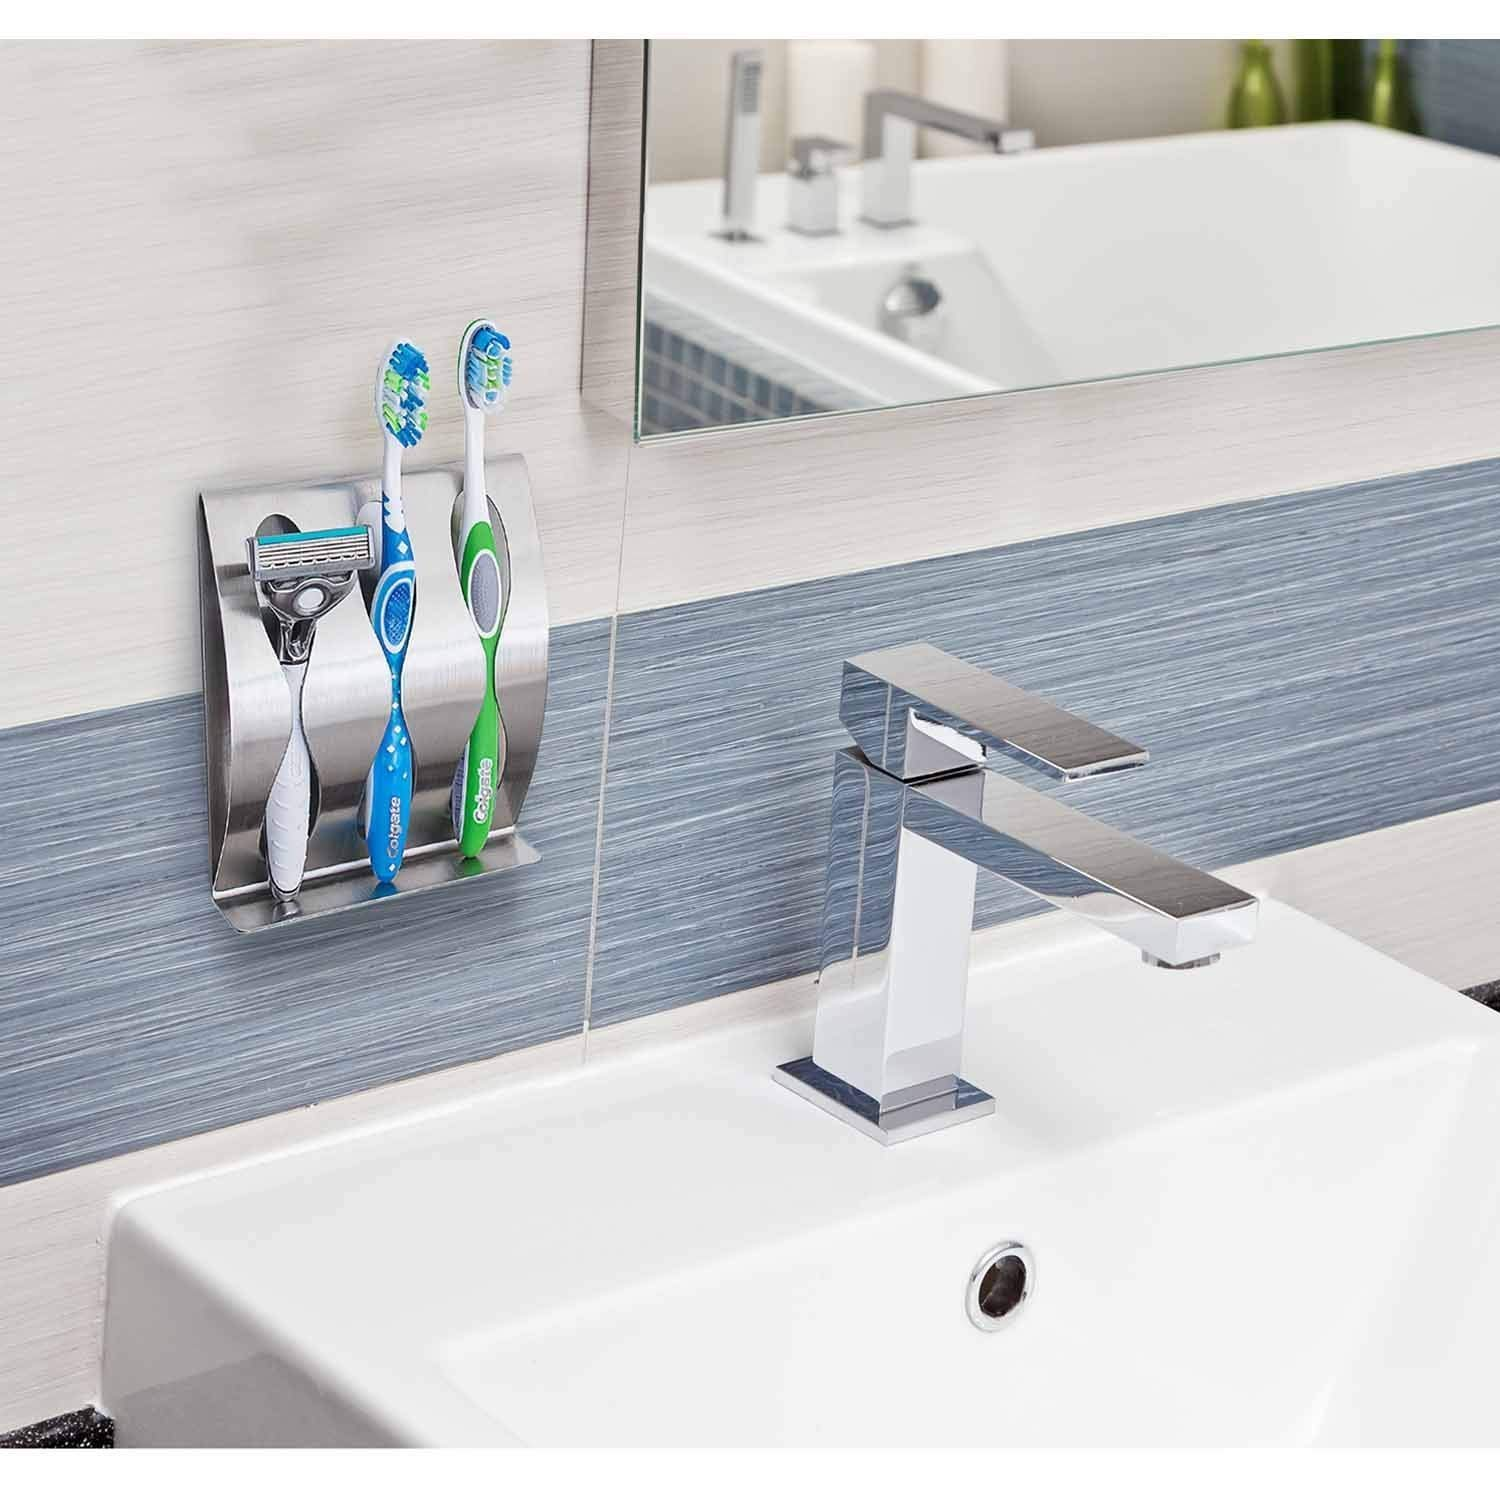 WARMTHOU Toothbrush Holder Wall Mounted, Polished Stainless Razor Holder Self-Adhesive Organizer with 3 Holes for Home Storage/Bathroom/Lavatory